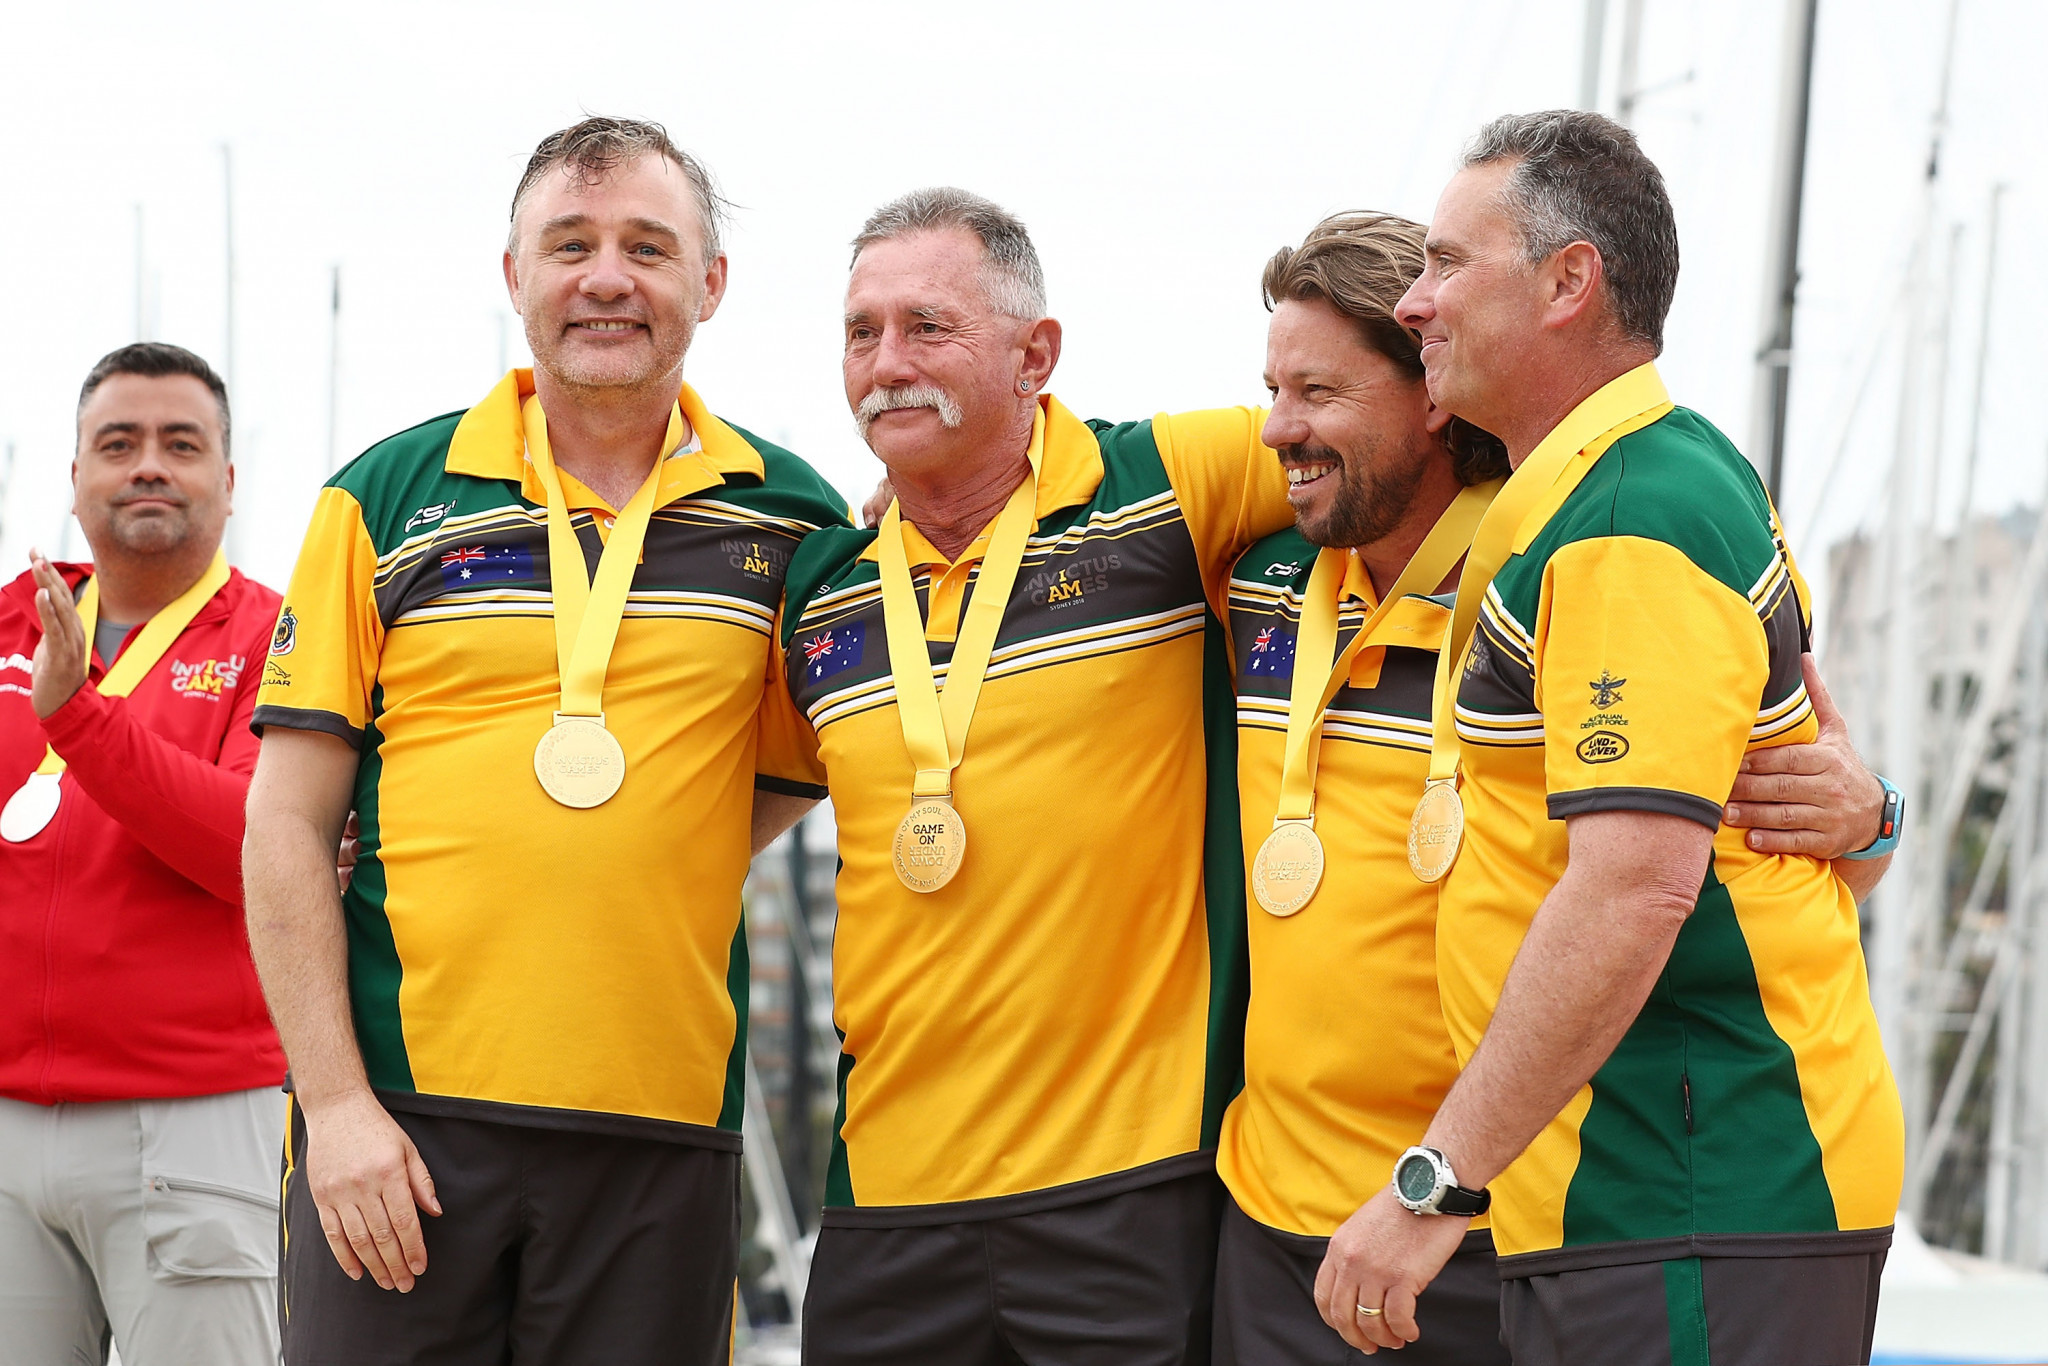 Australia won gold in the final of the Elliot 7 team event at the 2018 Sydney Invictus Games ©Getty Images